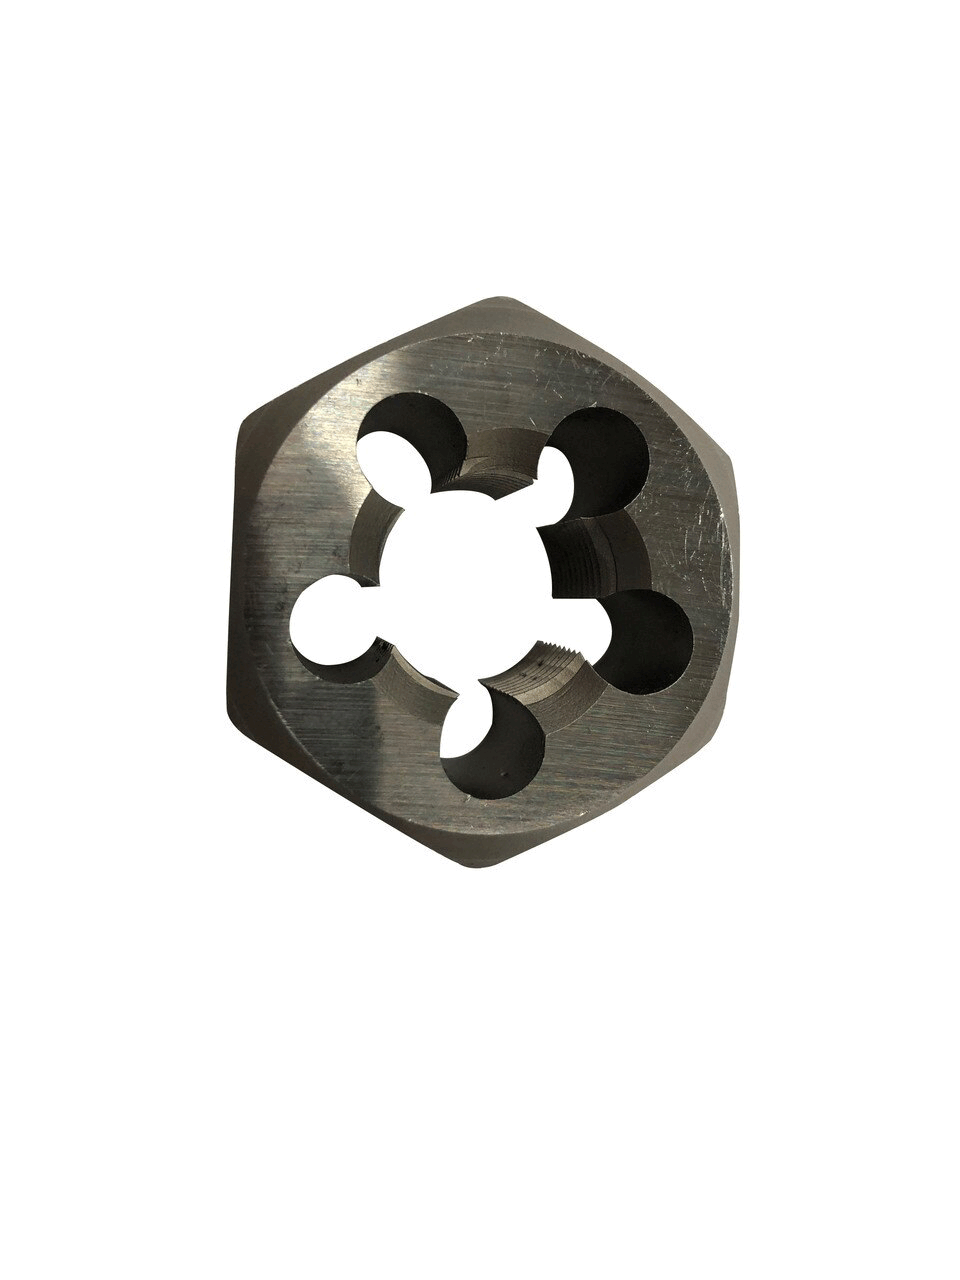 Hex Die, Type: Metric Special Threads Right Hand, Size: 15mm x 1.5mm Metric Carbon Steel